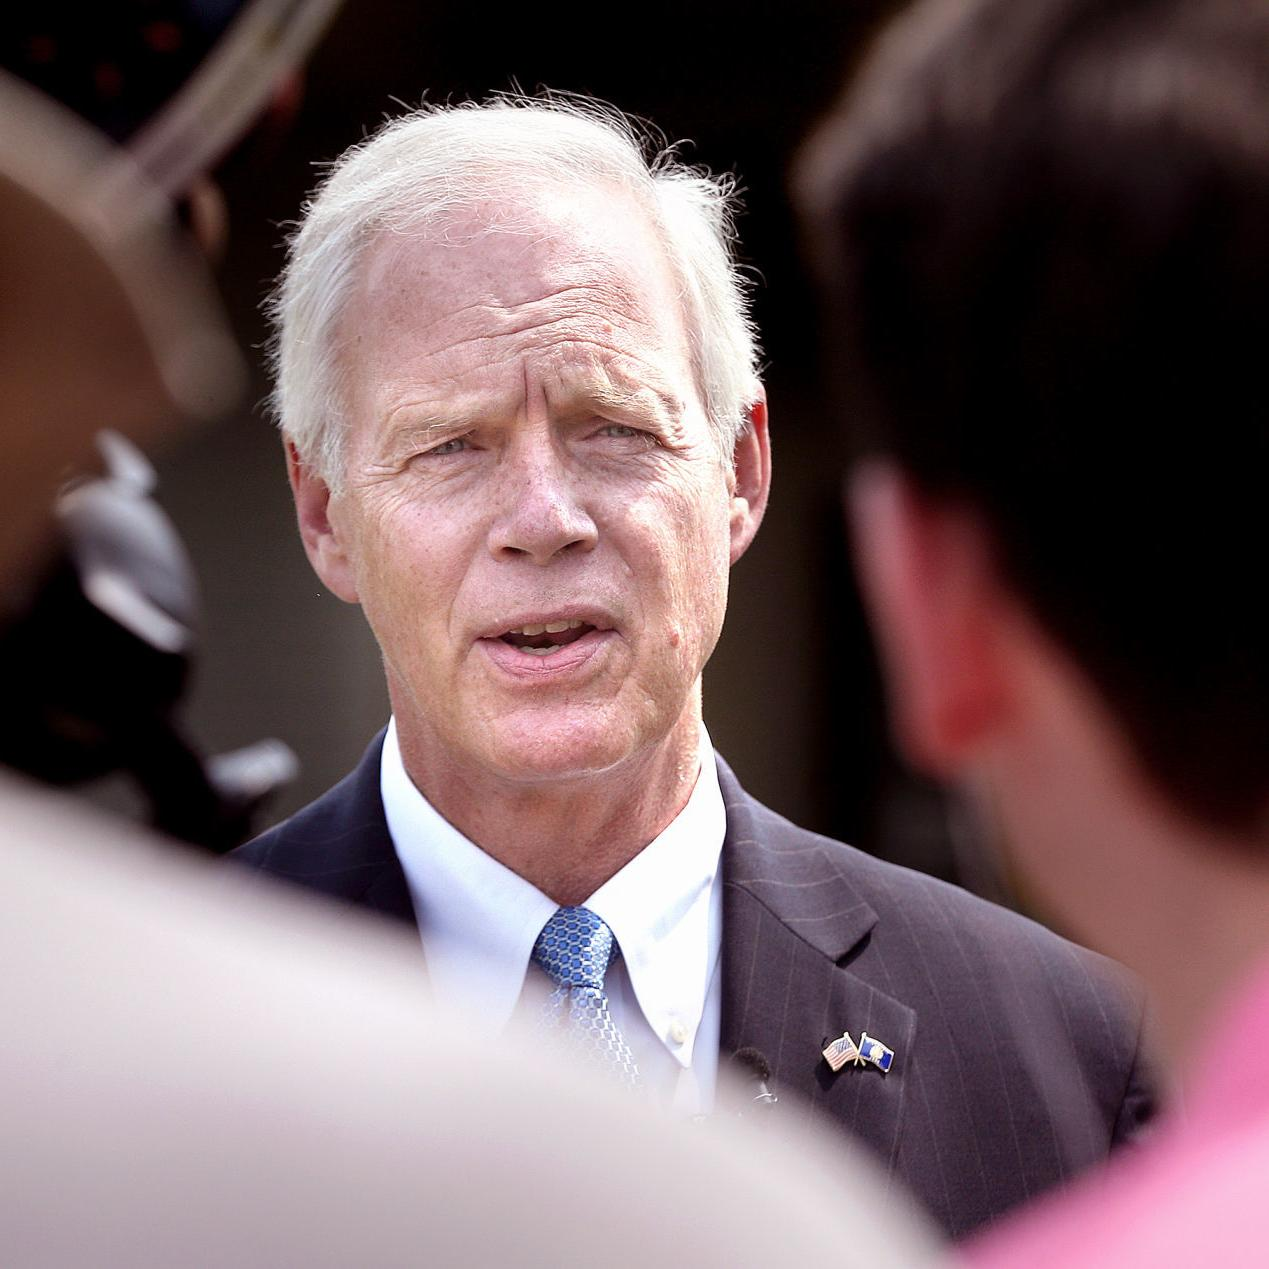 In Onalaska, Sen  Ron Johnson champions secure border, immigration